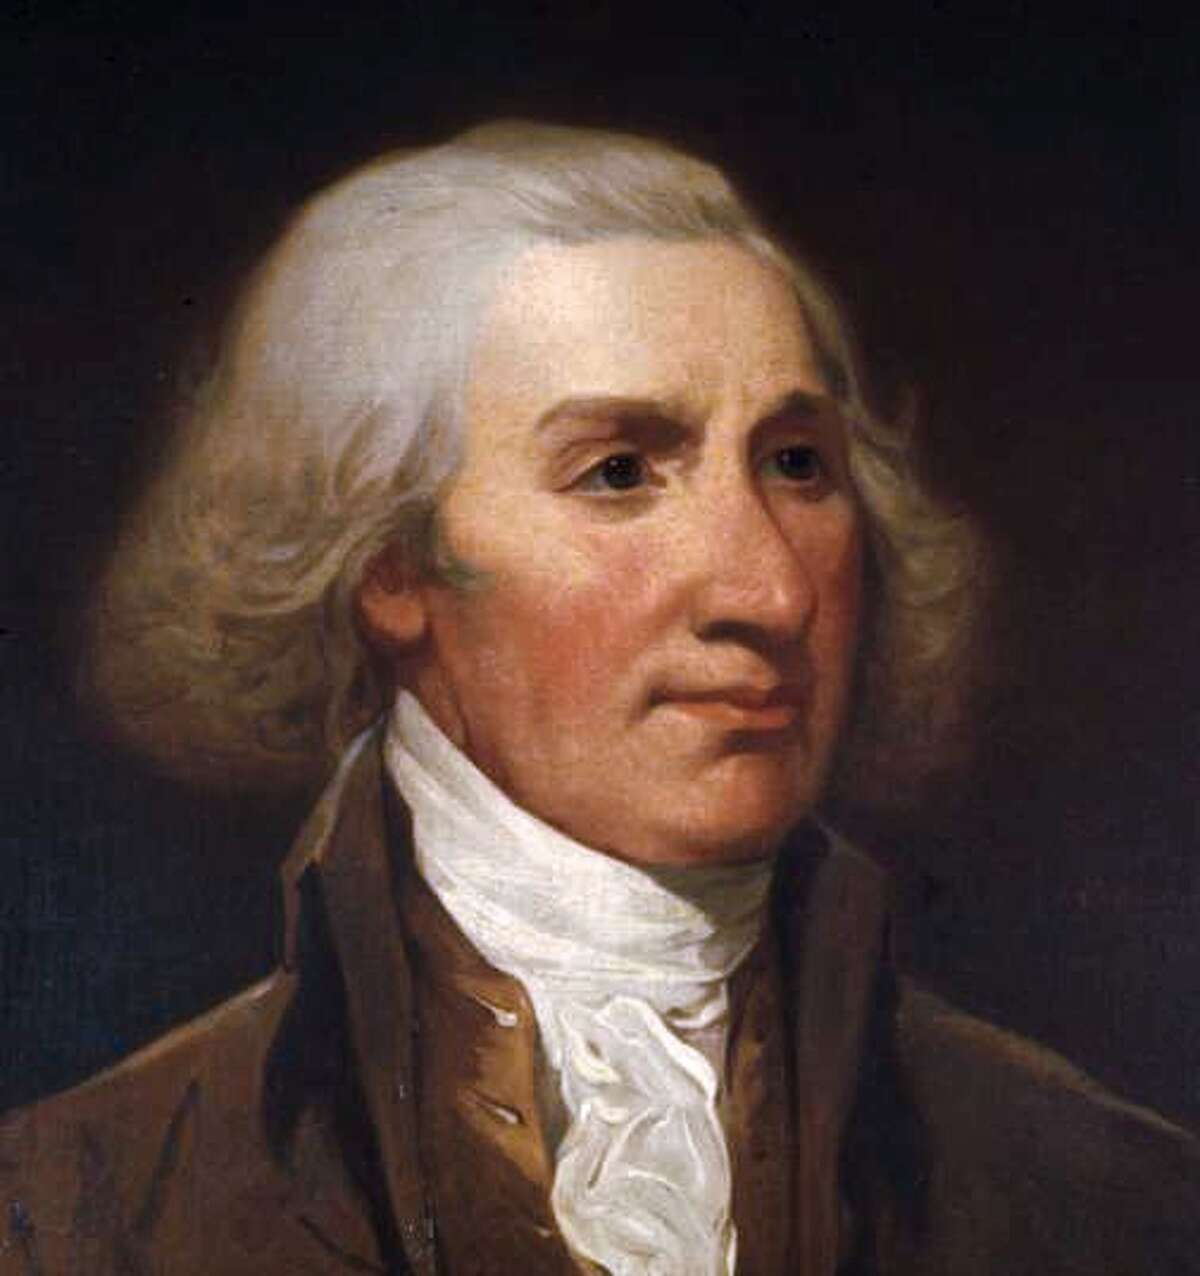 Philip John Schuyler, Revolutionary War general and father-in-law to Alexander Hamilton, is the namesake of Schuyler County, Illinois.